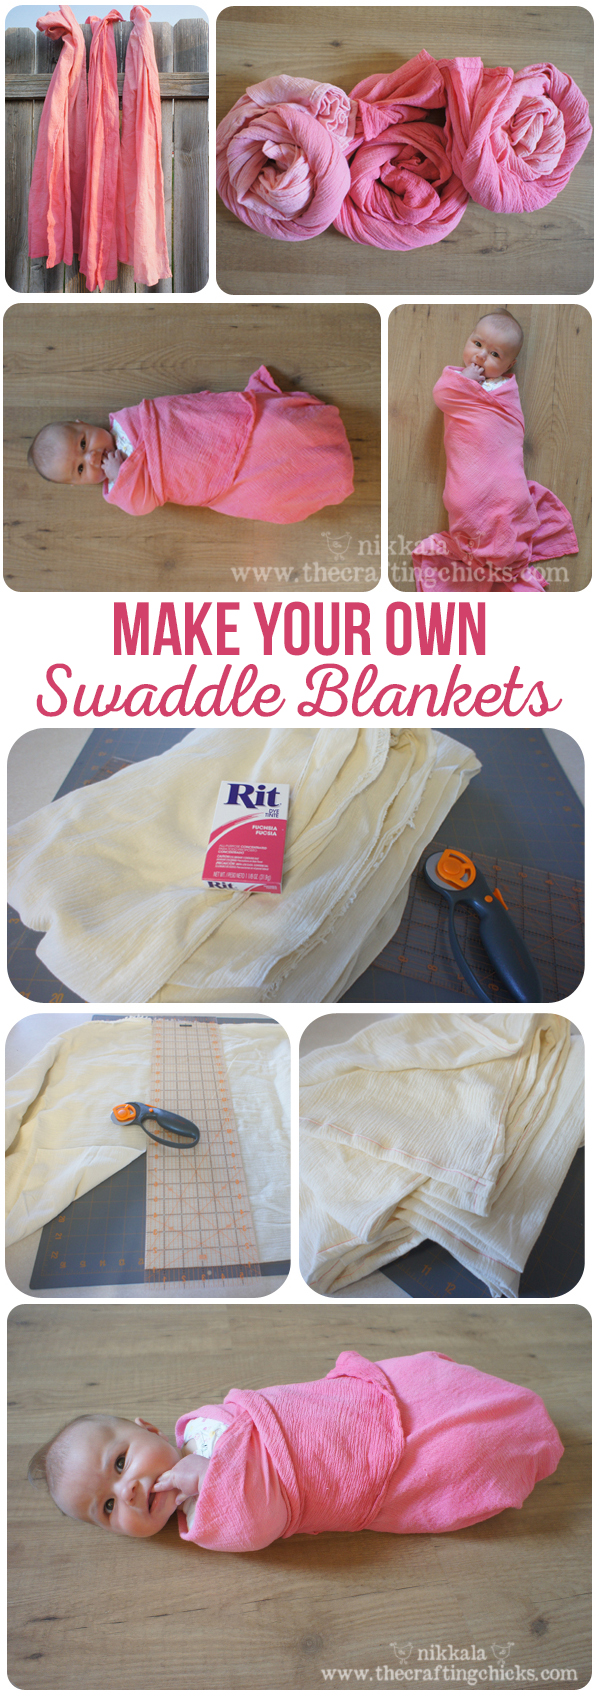 Make Your Own Swaddle Blanket